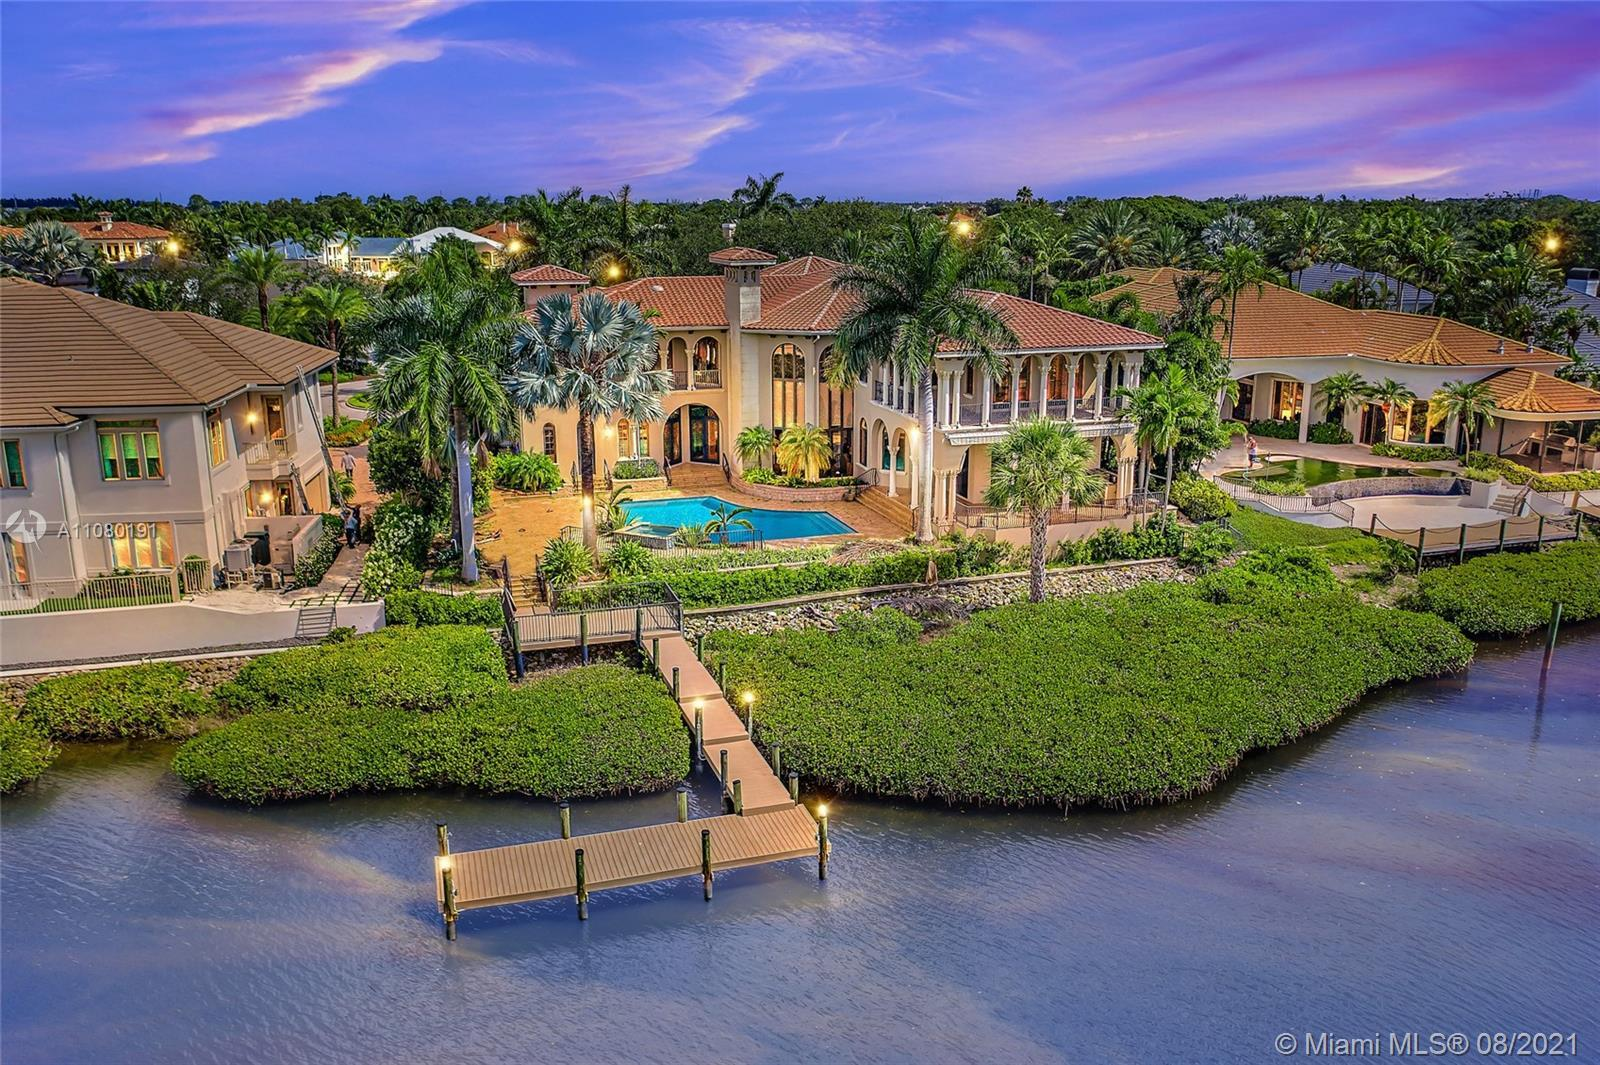 Waterfront Estate home with over 8,100 square feet of luxury living. Located on a tree lined, cul-de